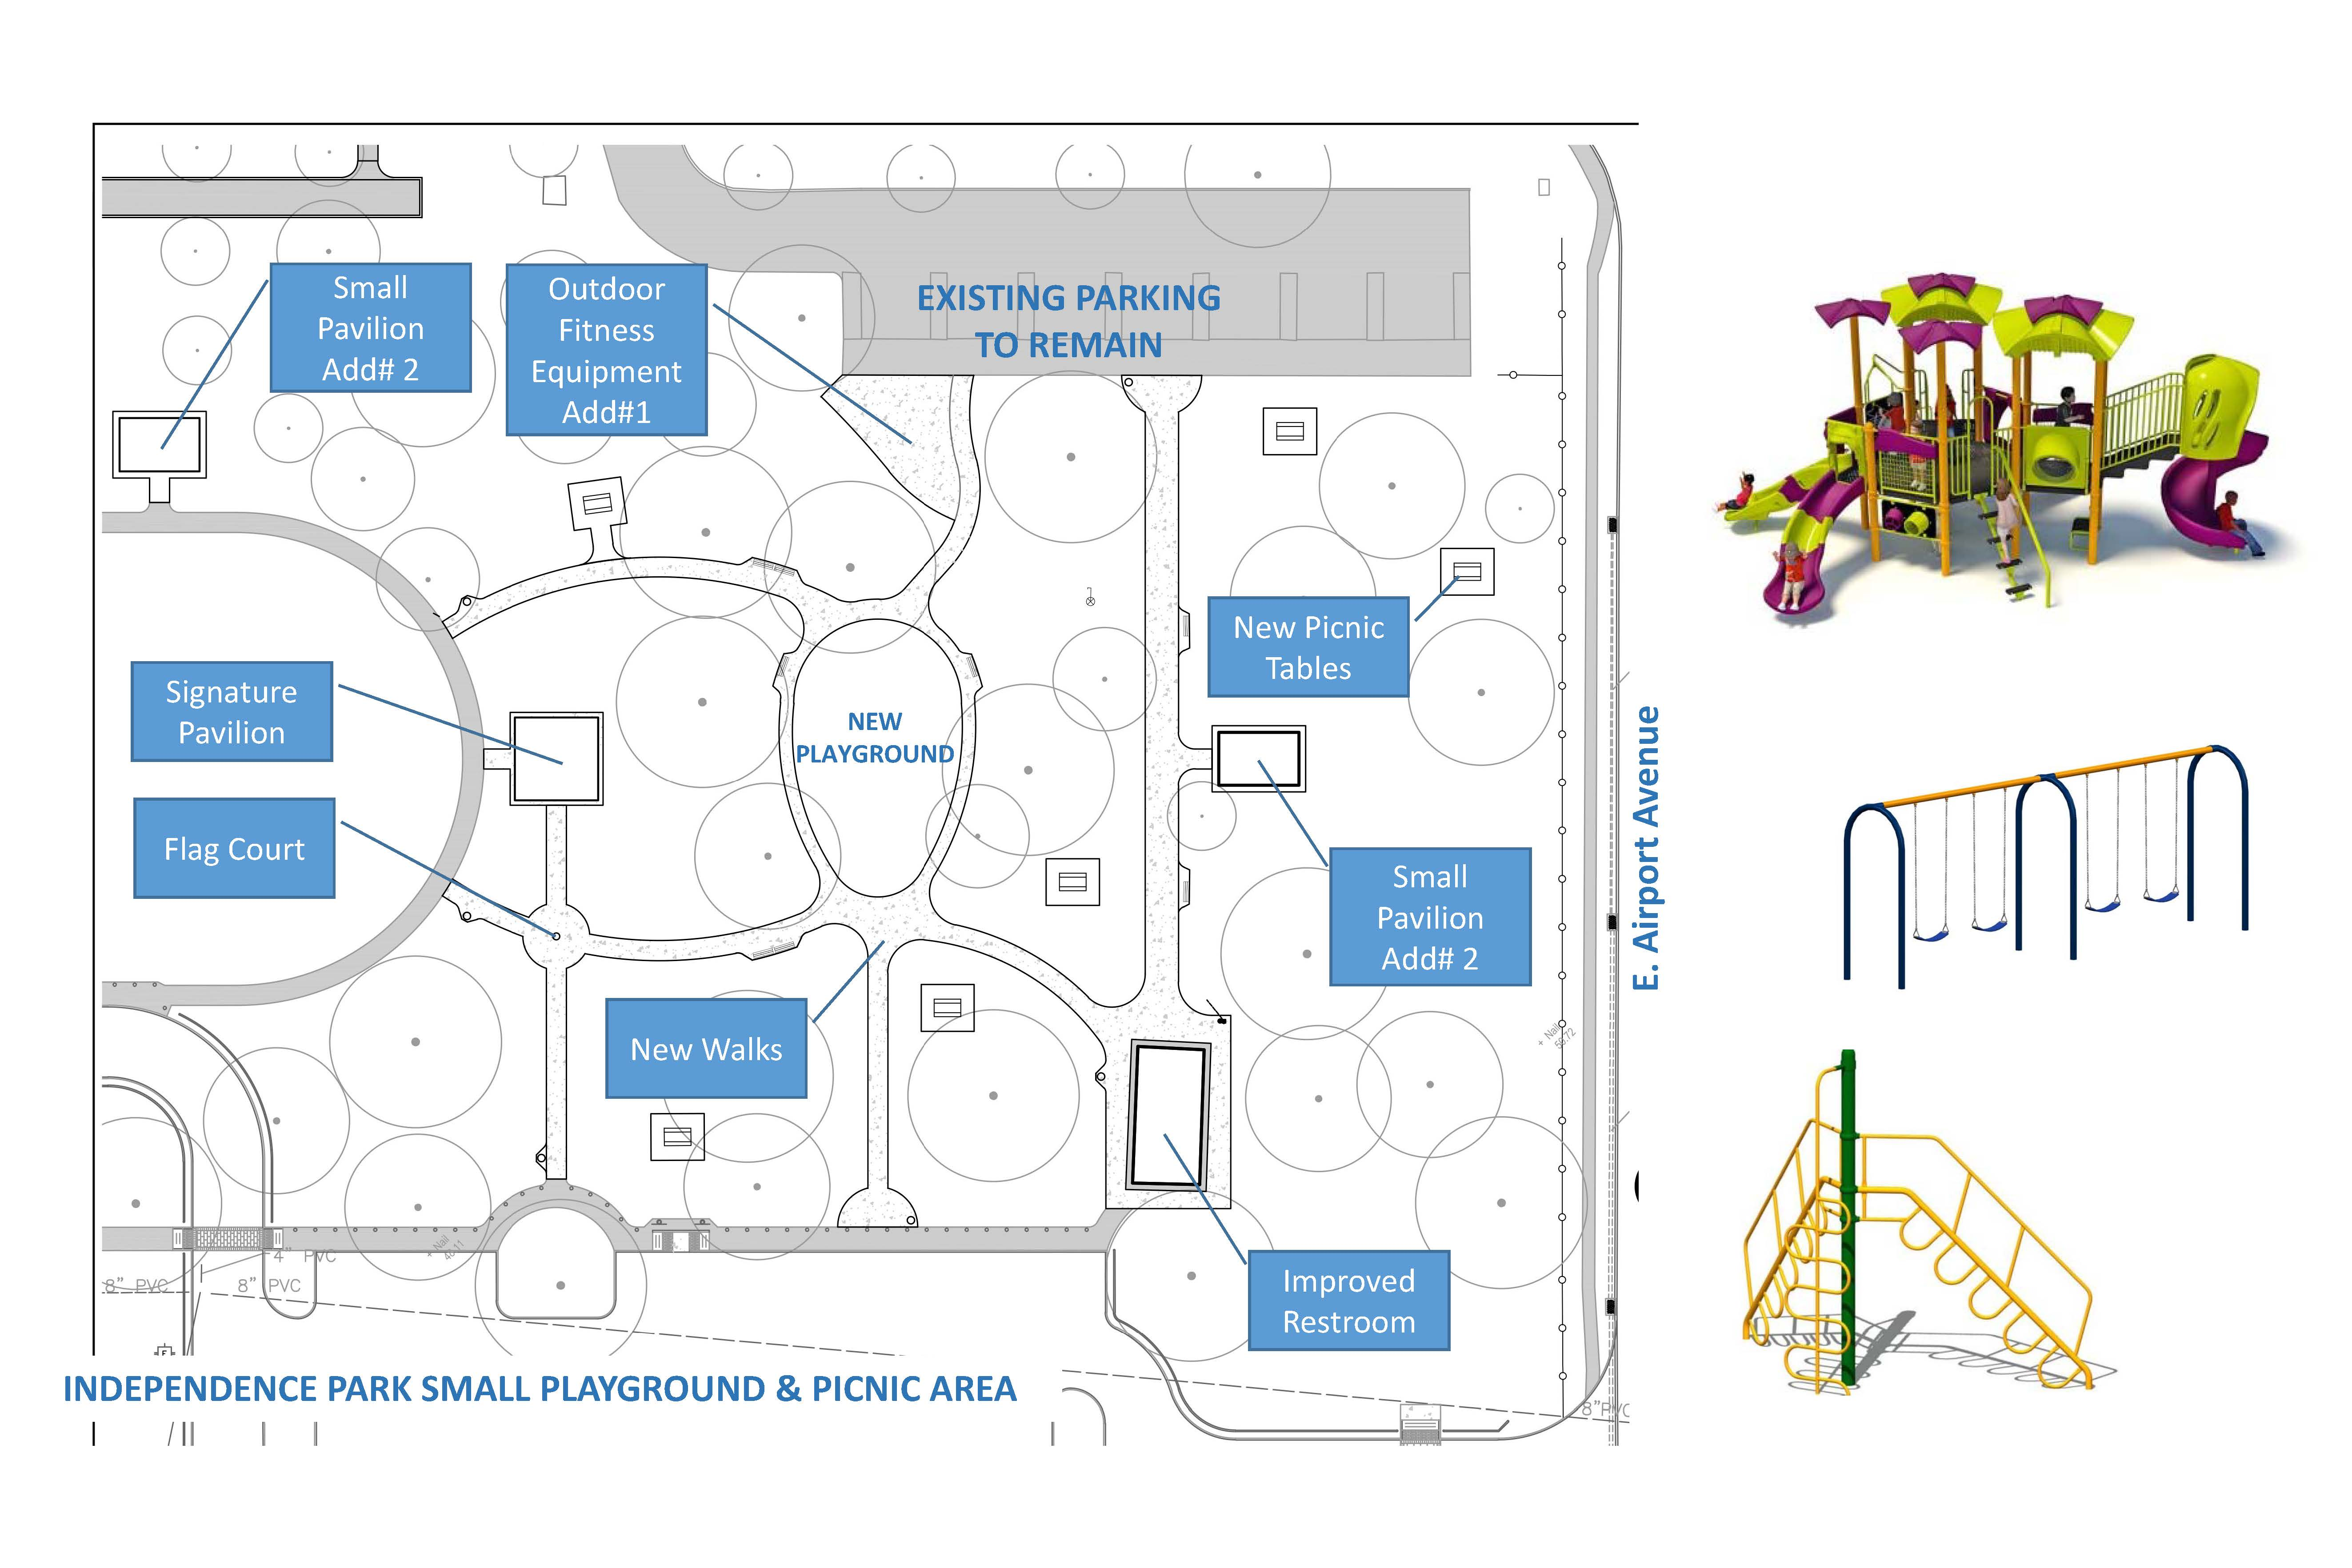 New Layout for expanded and improved playground area at Independence